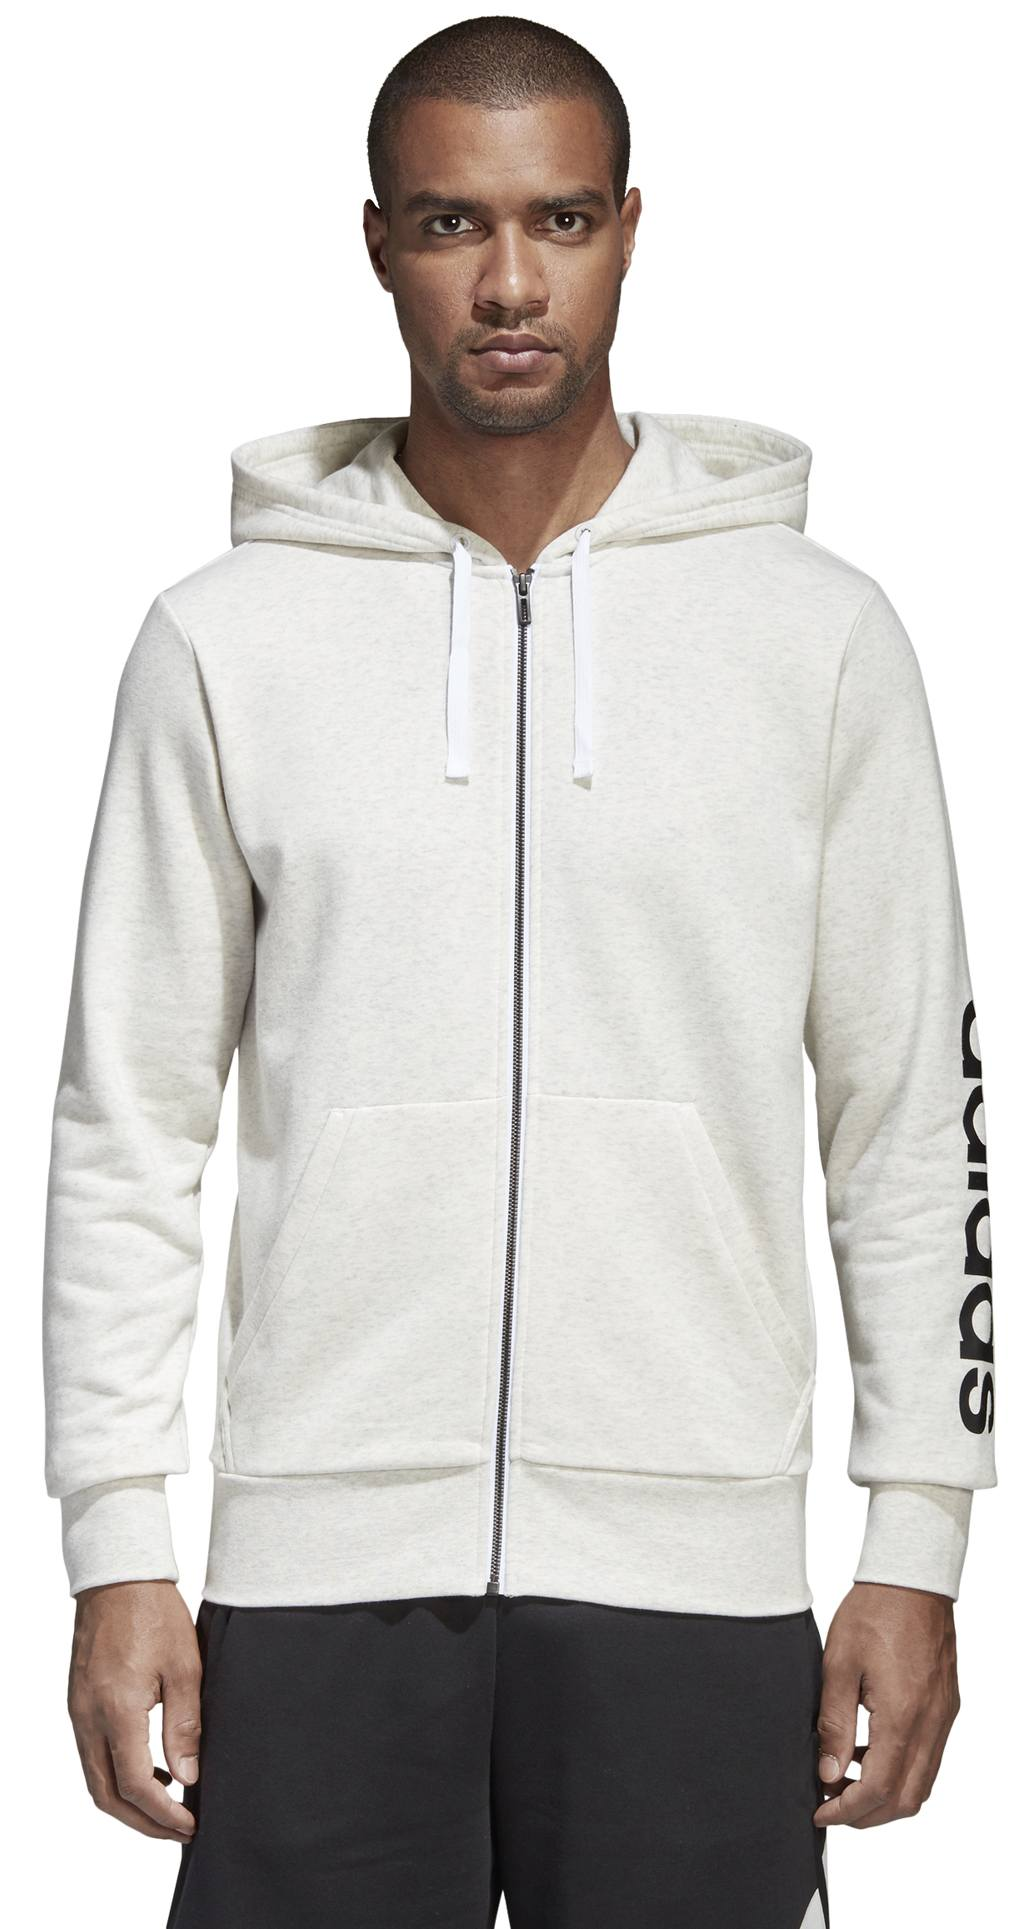 c2da6c2f1c12 adidas ESSENTIALS LINEAR FULL-ZIP HOOD FRENCH TERRY